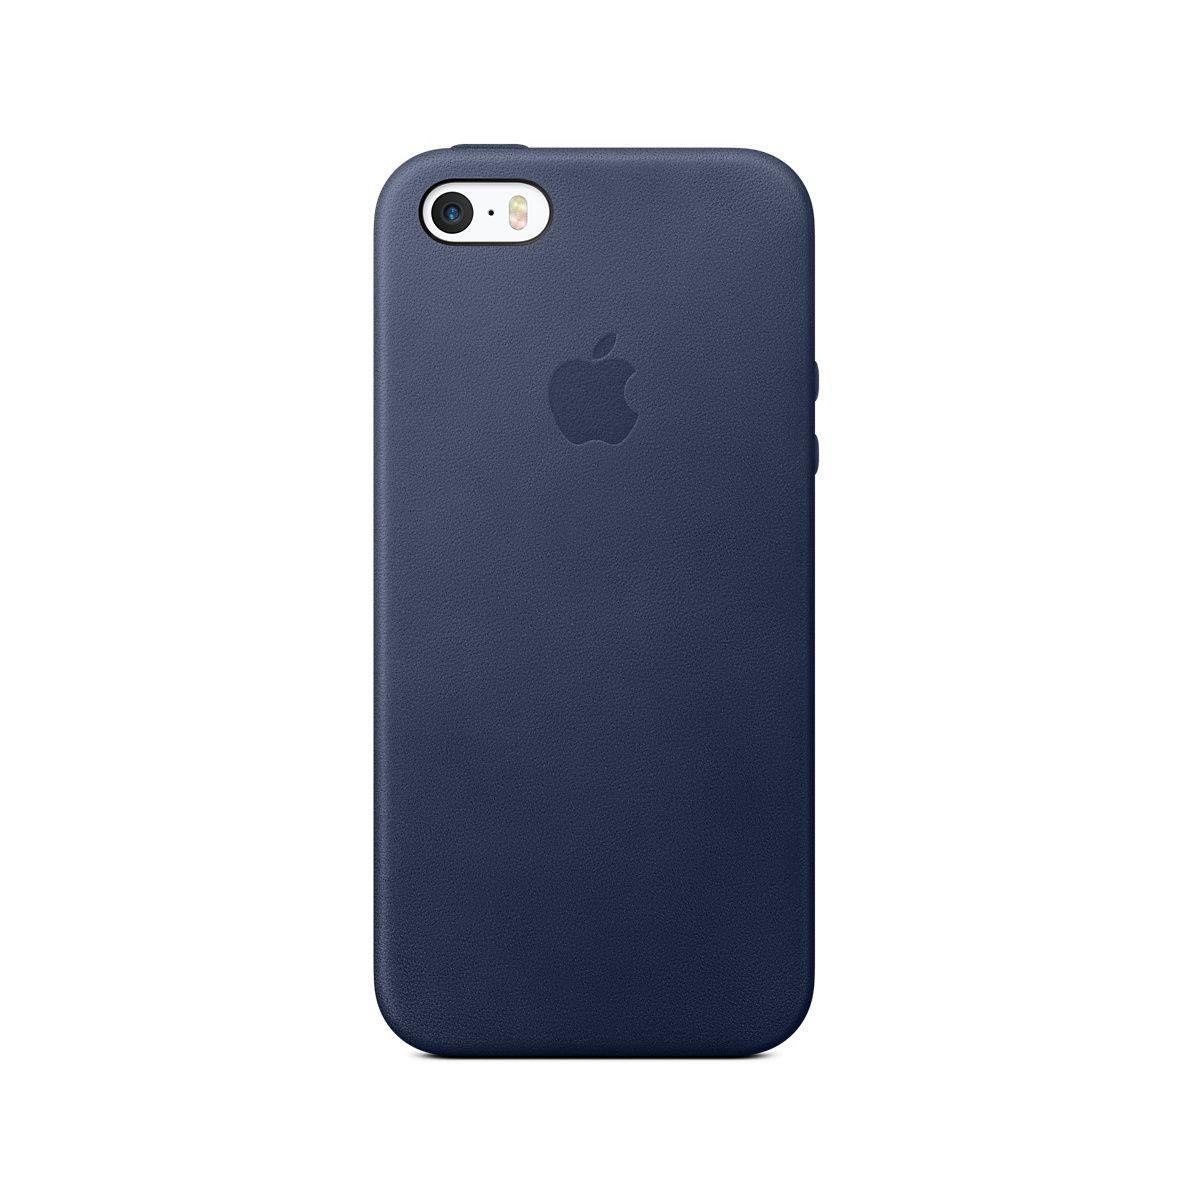 Coque apple cuir bleu nuit iphone 5s/se (photo)